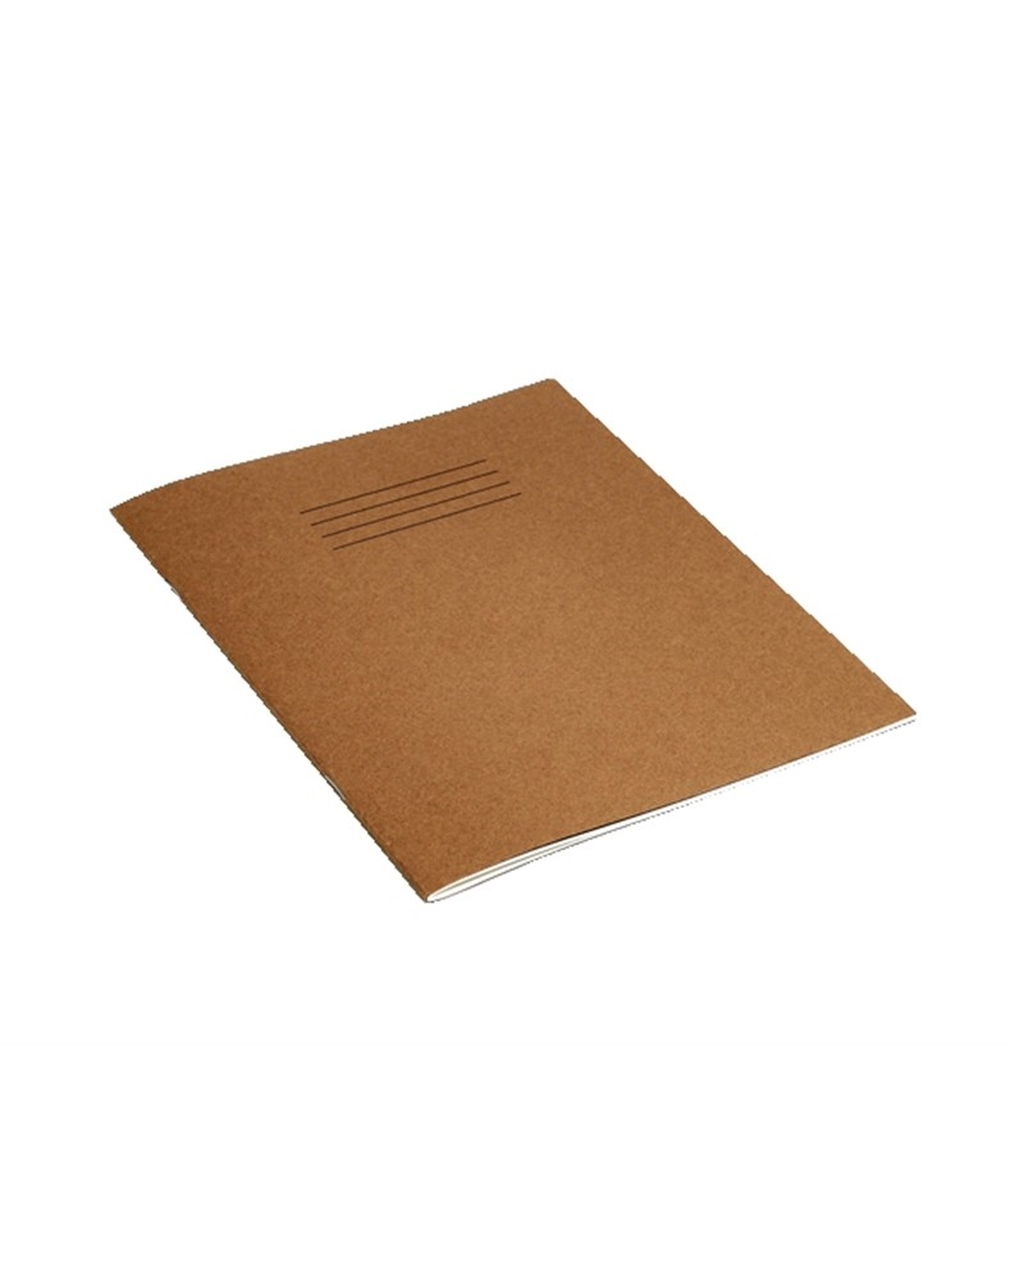 Exercise Book 9 x 7 (229 x 178mm) Buff Cover 8mm Ruled 48 Pages